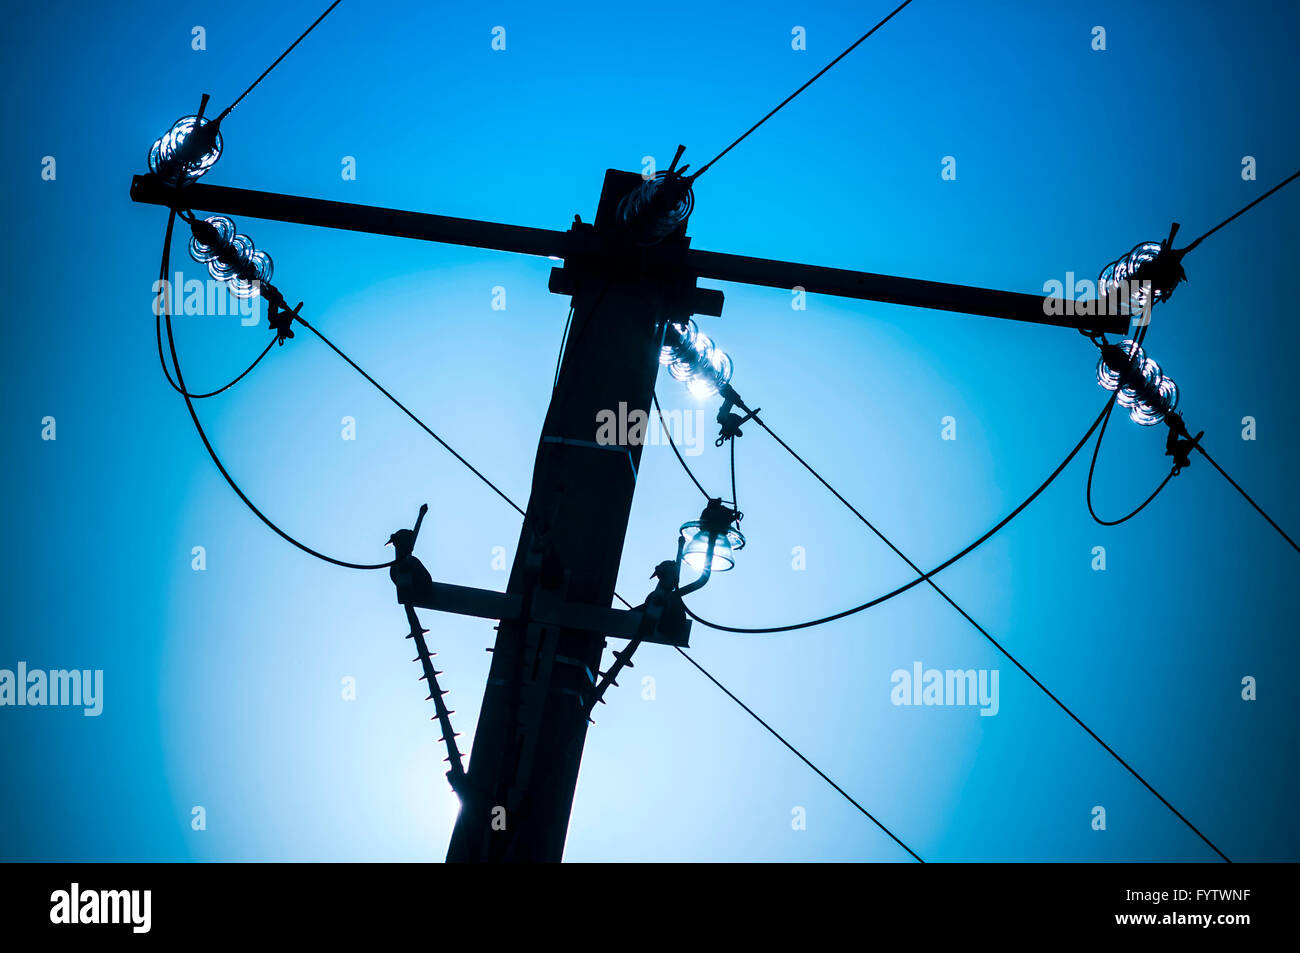 0verhead high-tension electricity wires on concrete post - France. - Stock Image